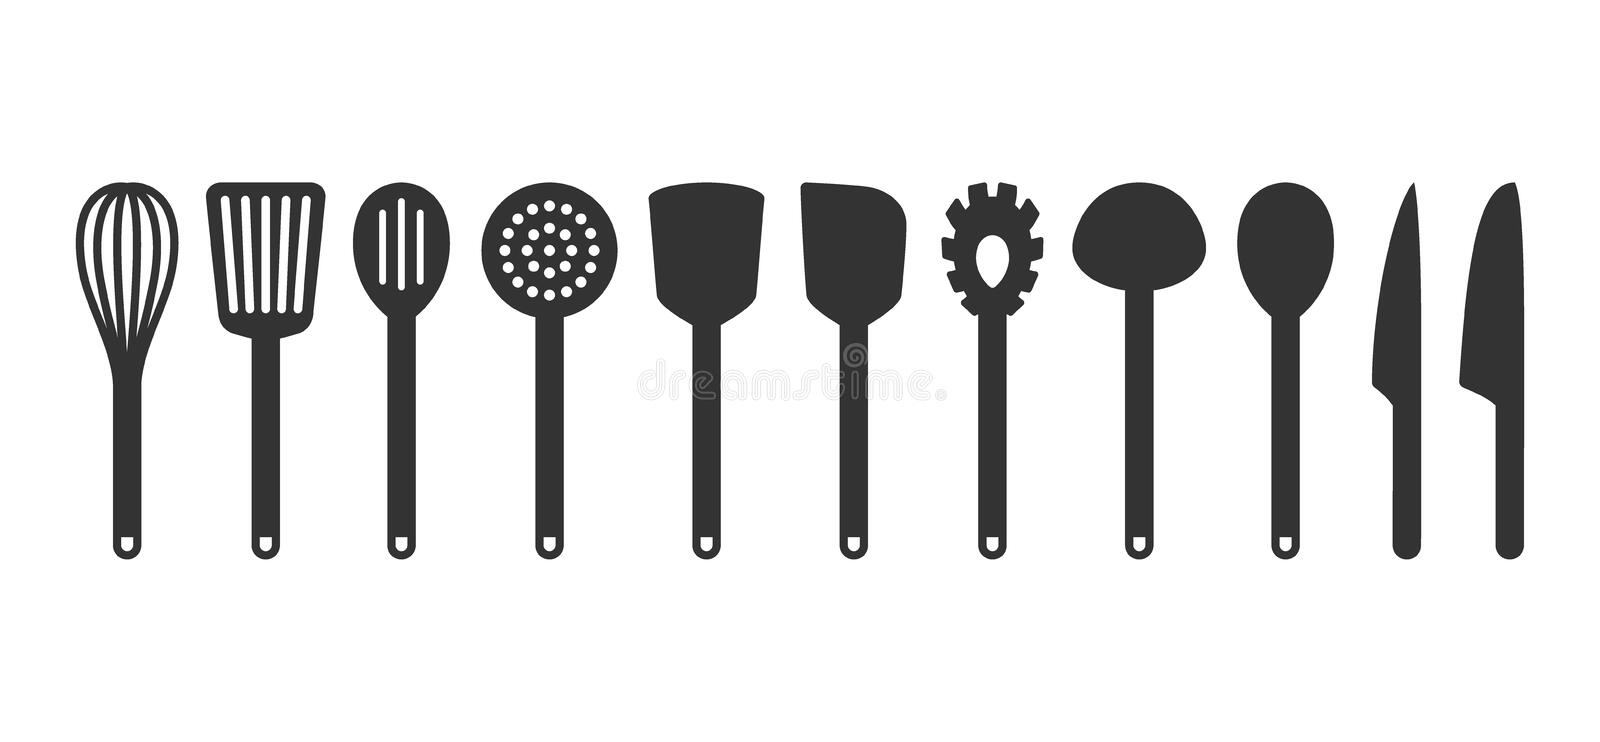 Cooking utensil set of tools. Kitchen tools black isolated vector icons. stock illustration